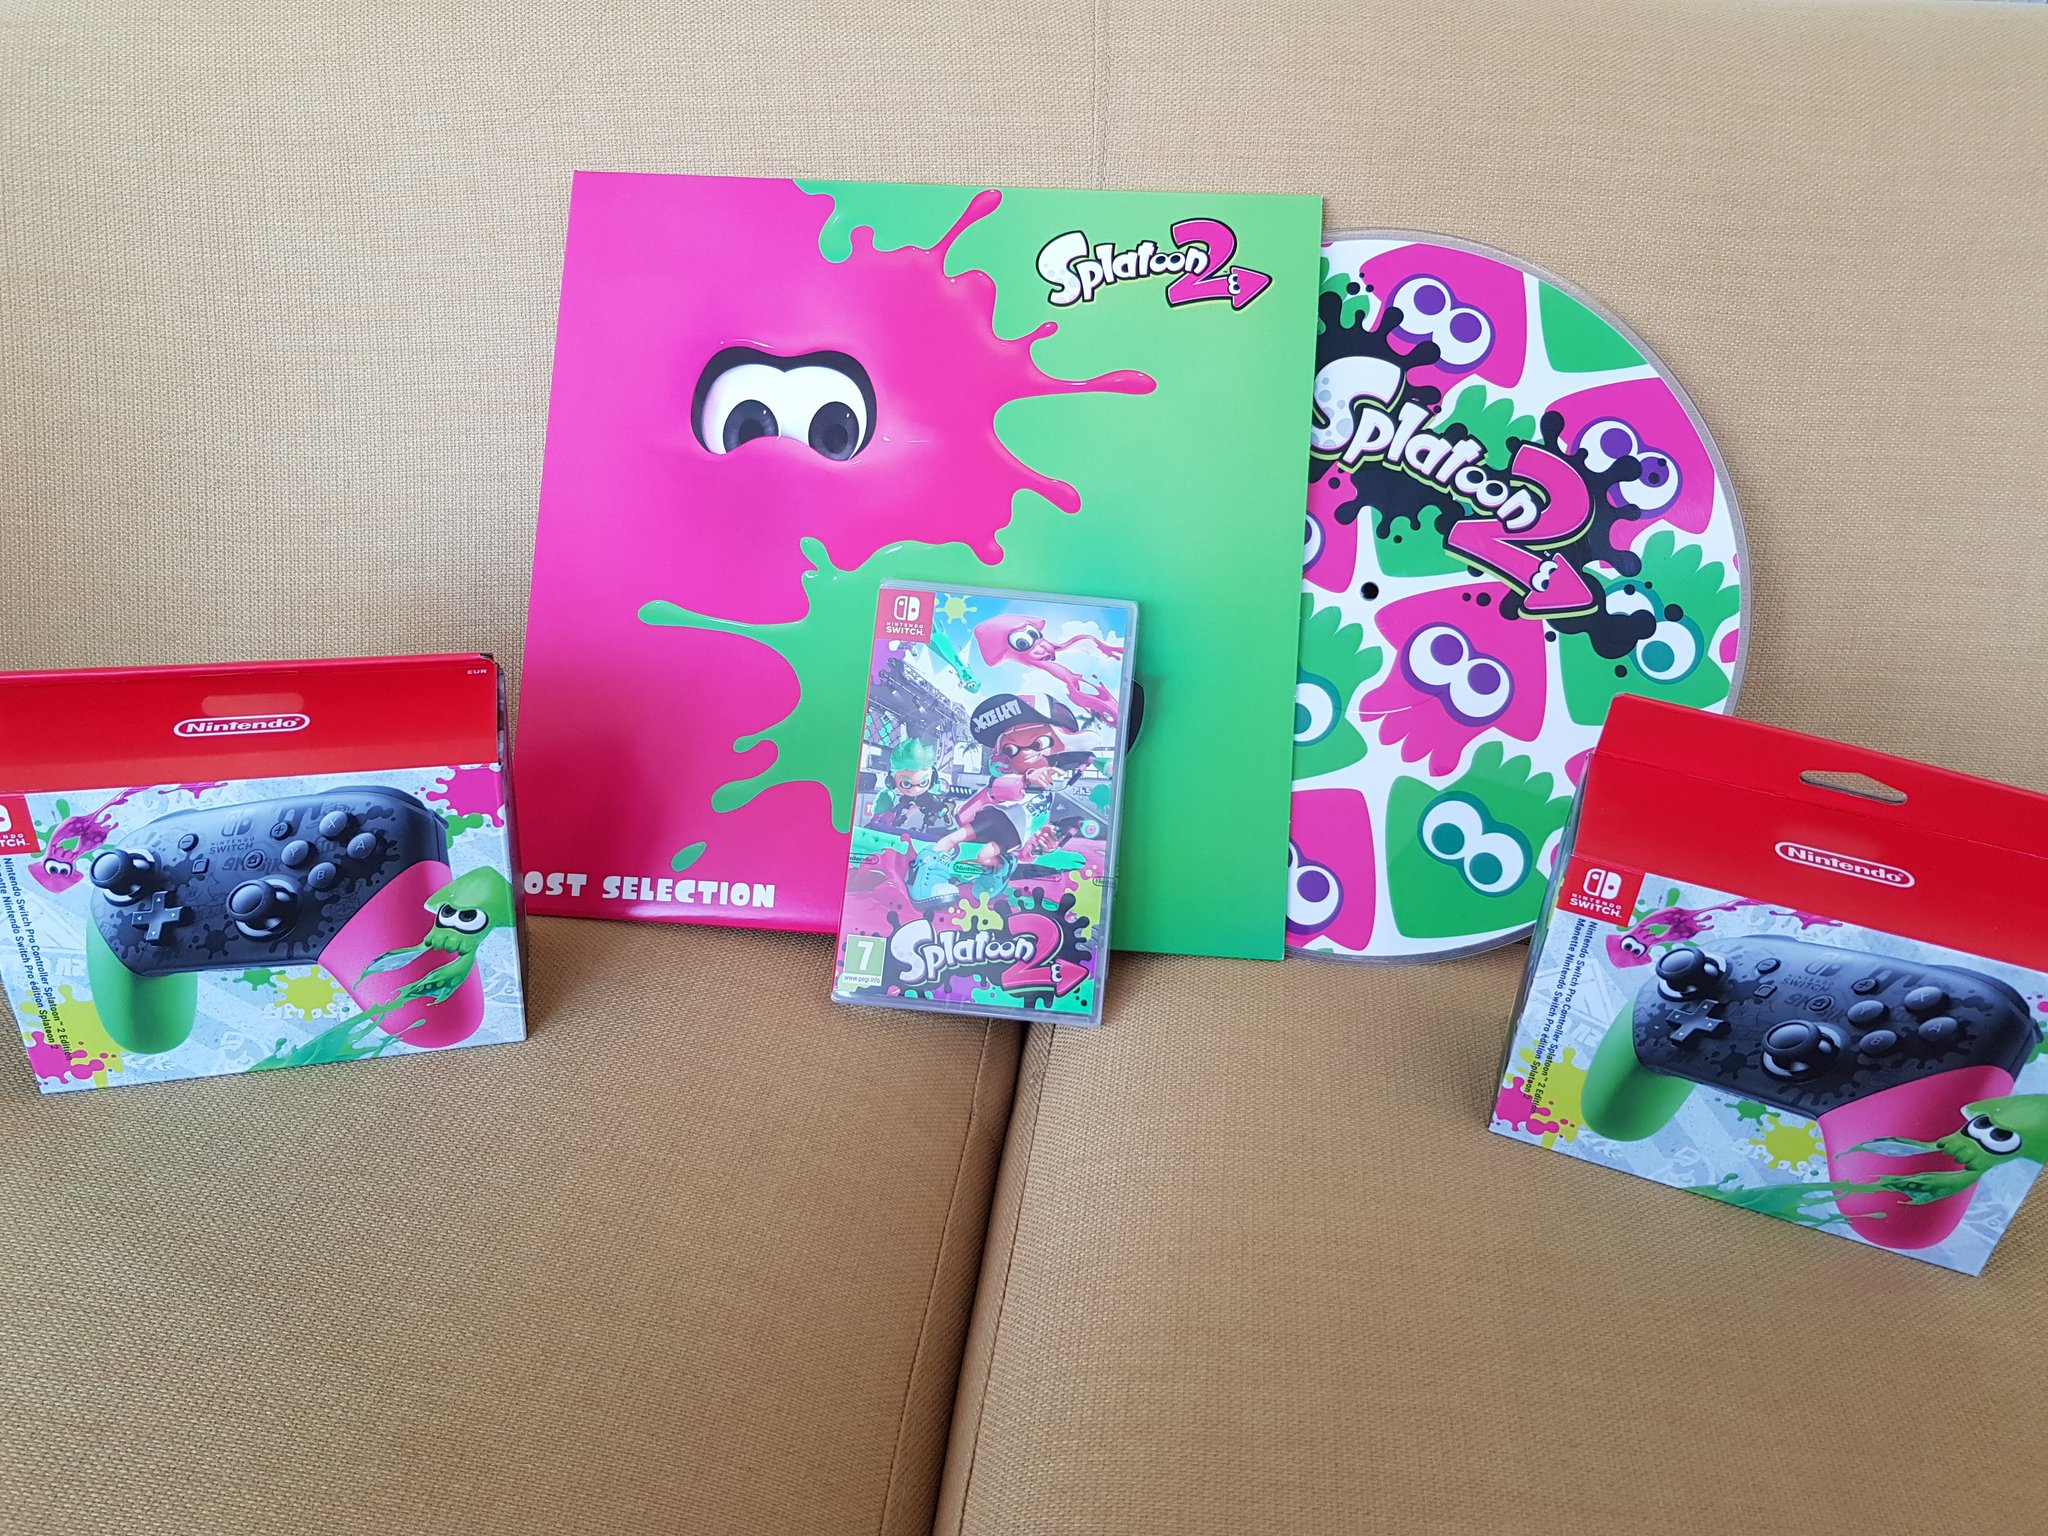 European Press Get Splatoon 2 Vinyl Album Gonintendo Nintendo Switch Pro Controller Edition Seems Like Some Eu Members Got Their With Review Copies What I Wouldnt Give For One Of Those